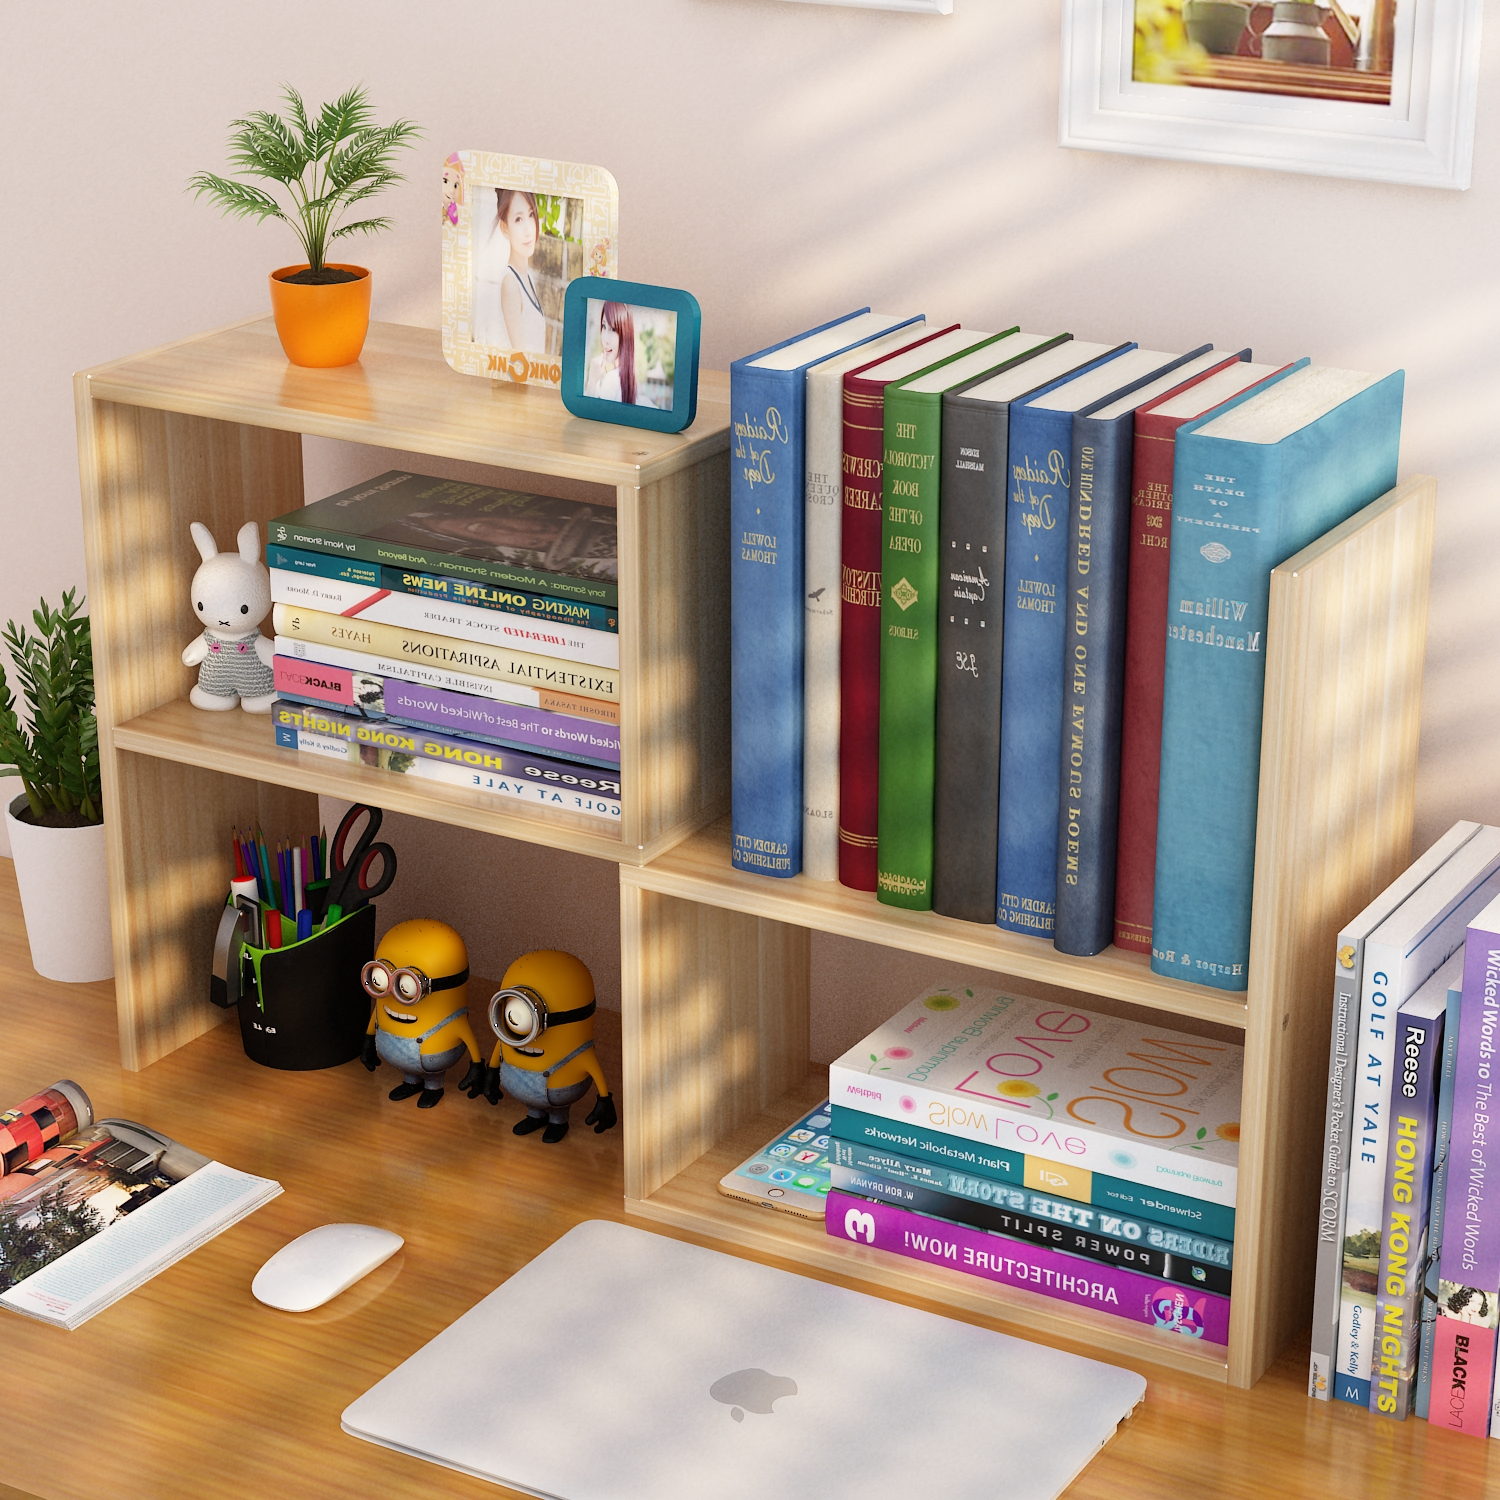 20 Home Office Bookshelves Designs Ideas: [USD 20.99] Bookshelf Shelf Simple Desk Student Children's